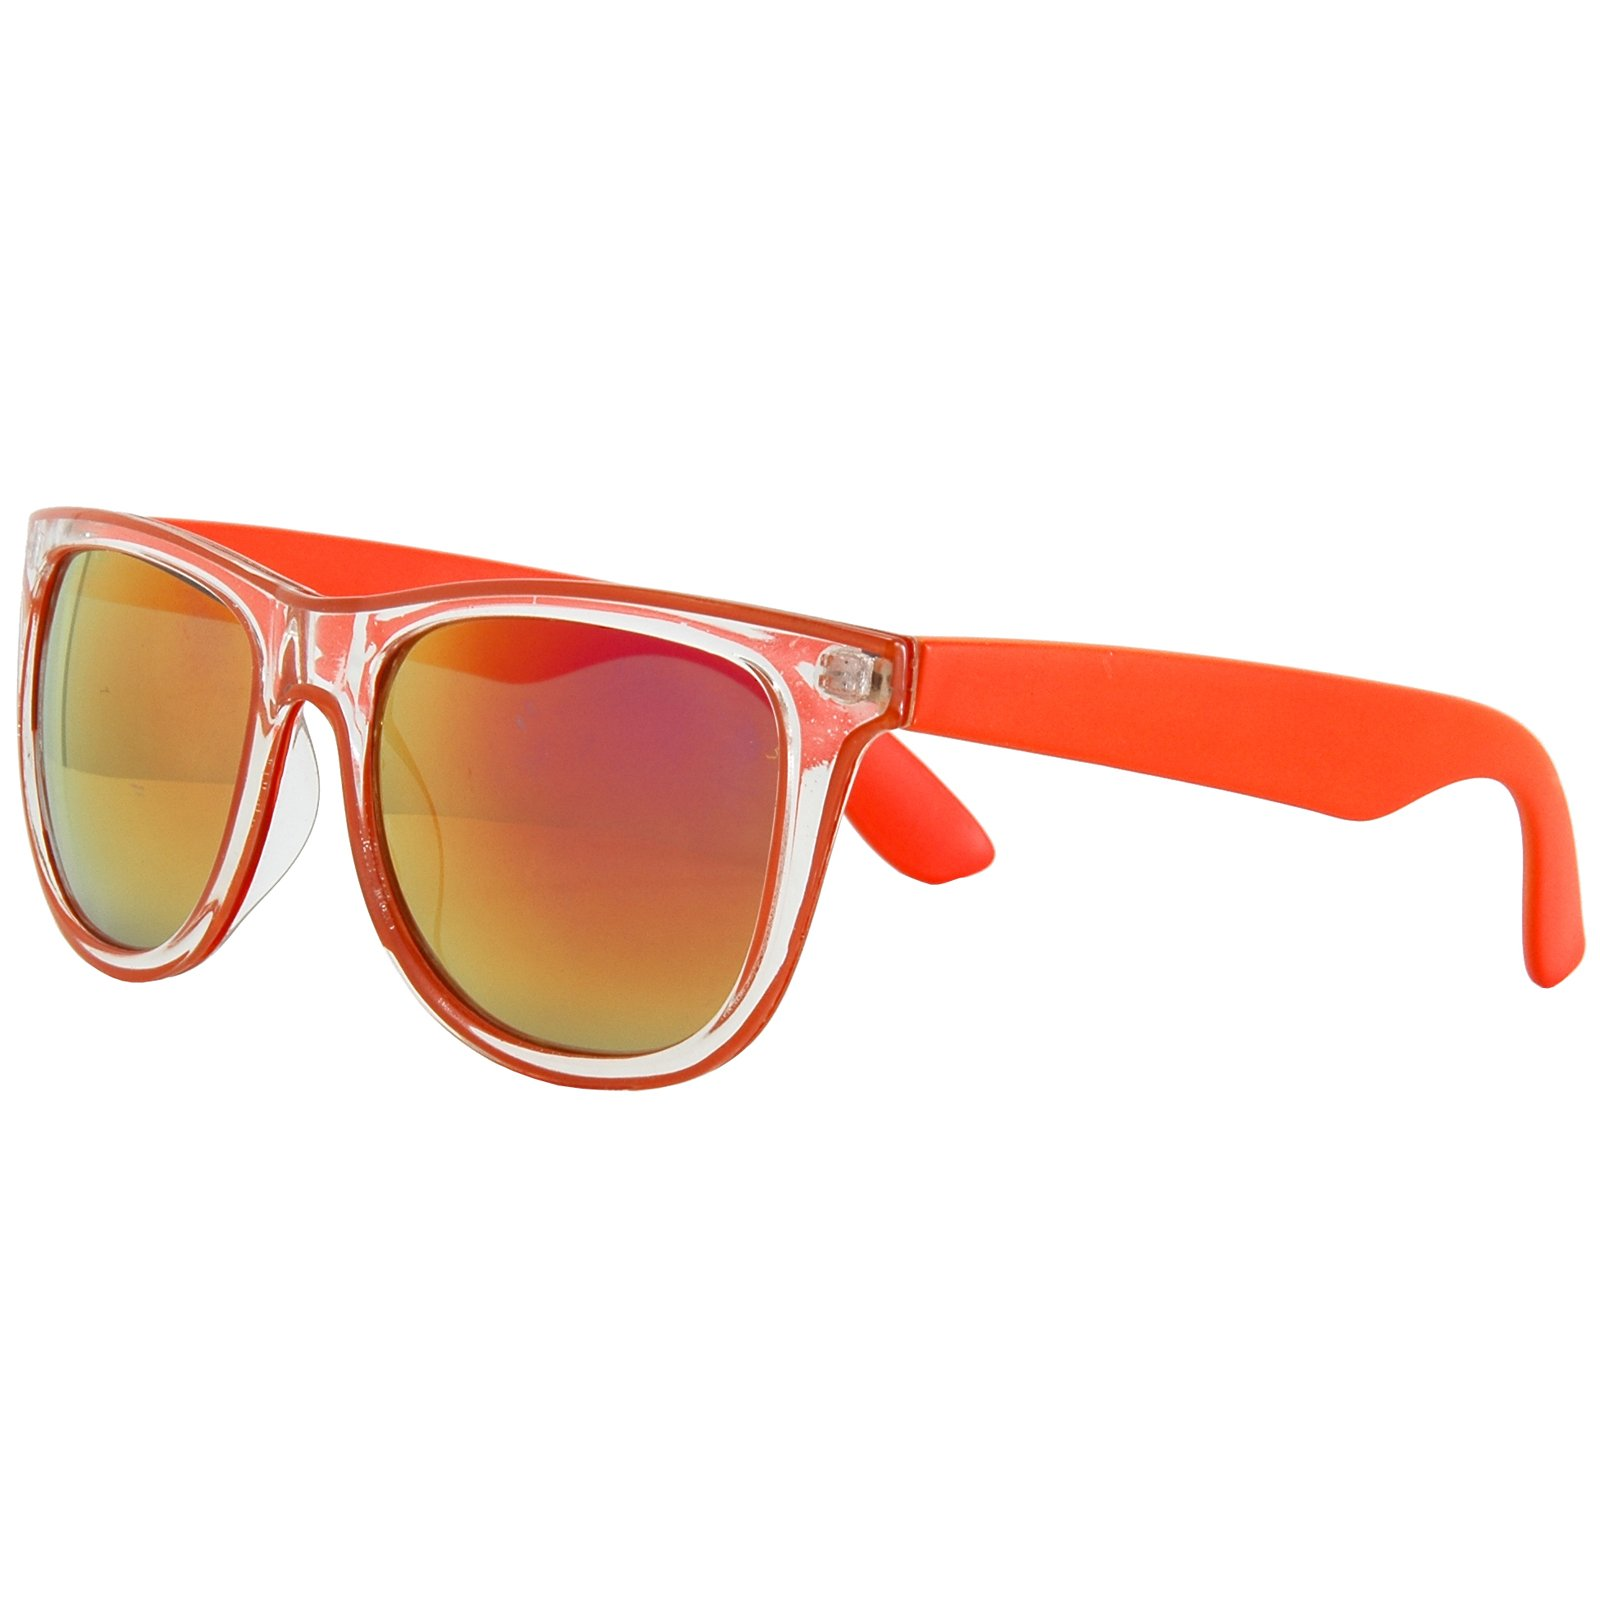 80's Neon Rimmed - Orange Sunglasses